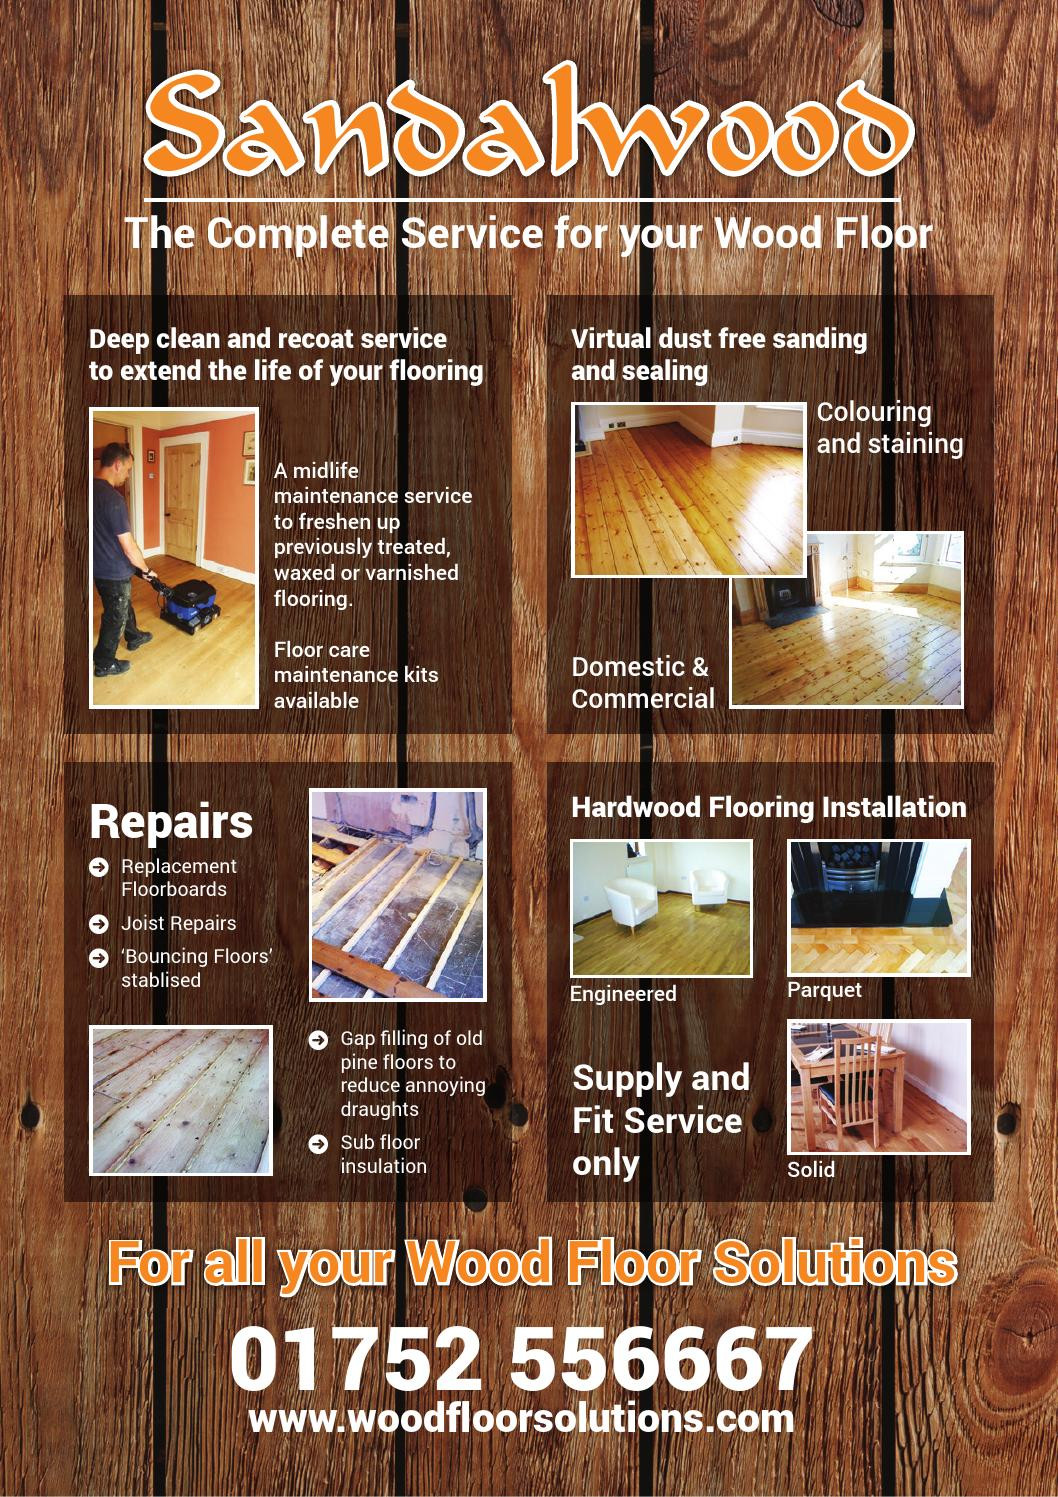 how to close gaps in hardwood floors of plymouth magazine october 2015 by cornerstone vision issuu intended for page 67